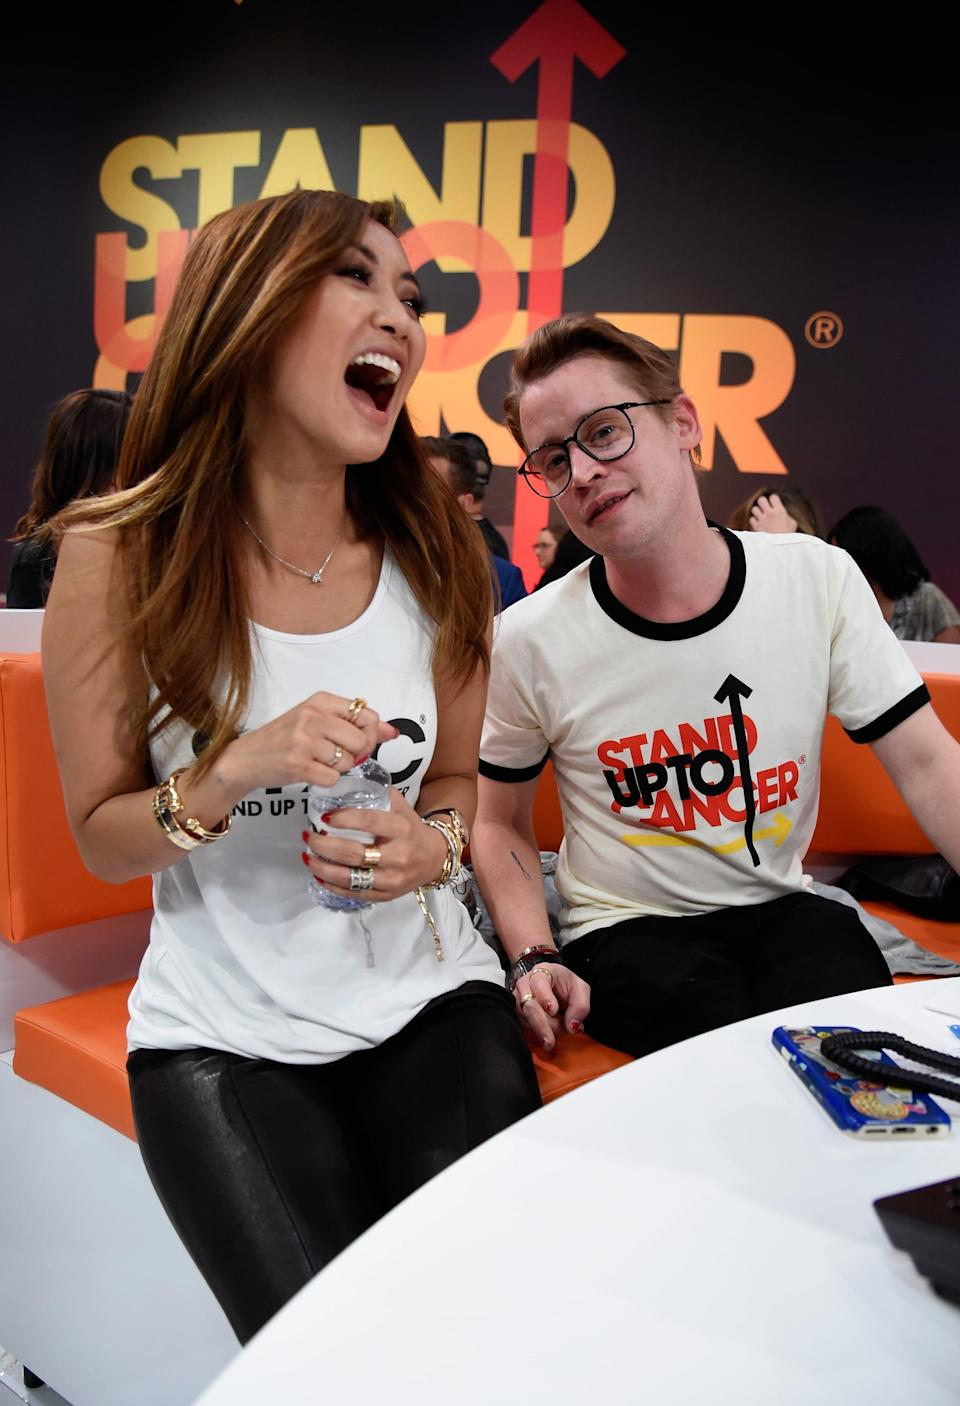 SANTA MONICA, CA - SEPTEMBER 07:  Brenda Song (L) and Macaulay Culkin attend the sixth biennial Stand Up To Cancer (SU2C) telecast at the Barkar Hangar on Friday, September 7, 2018 in Santa Monica, California.  (Photo by Kevin Mazur/Getty Images for Stand Up To Cancer)